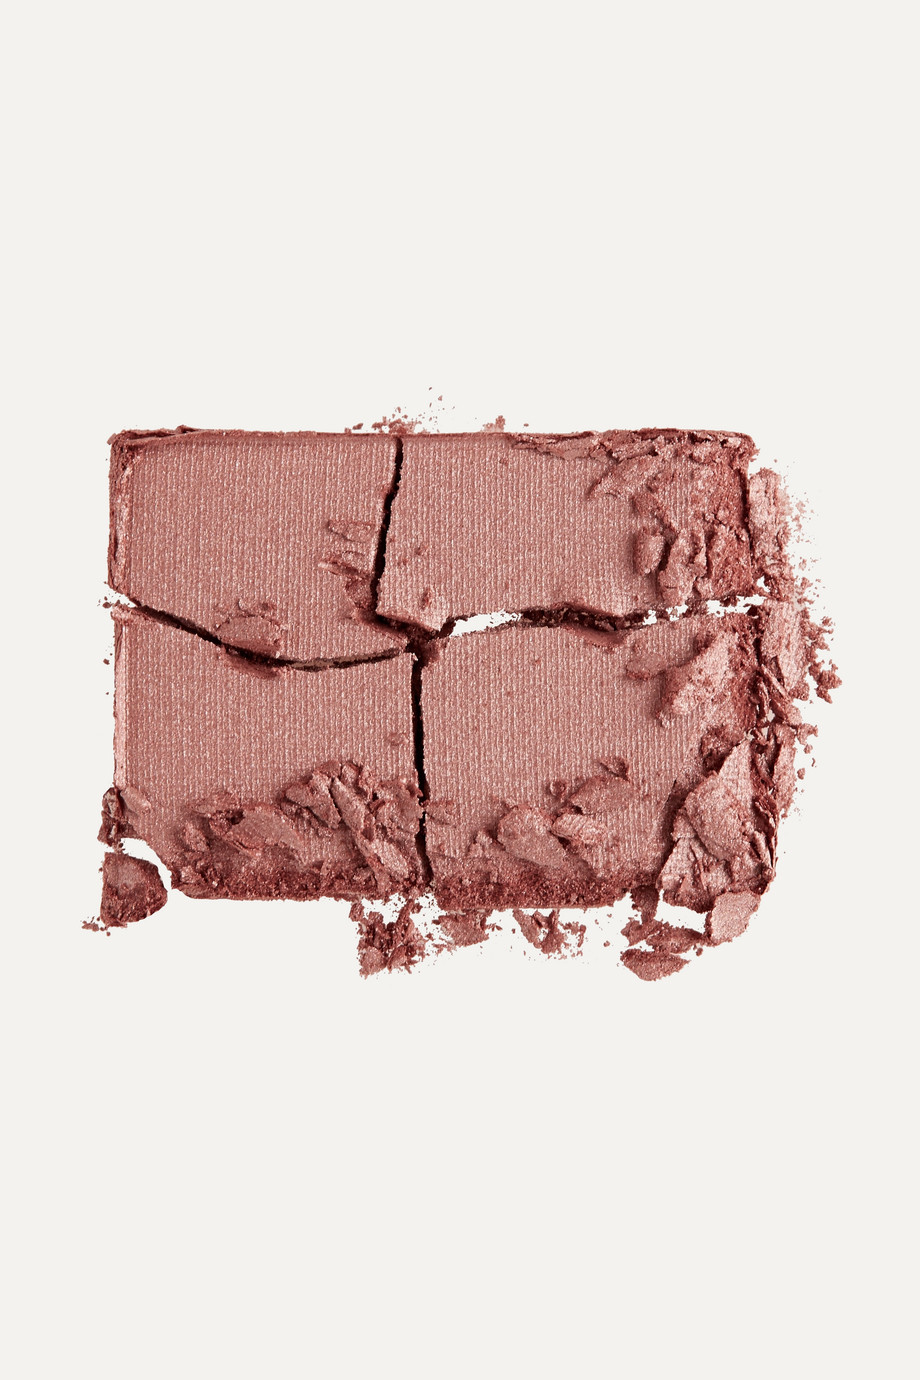 NARS Single Eyeshadow - Nepal